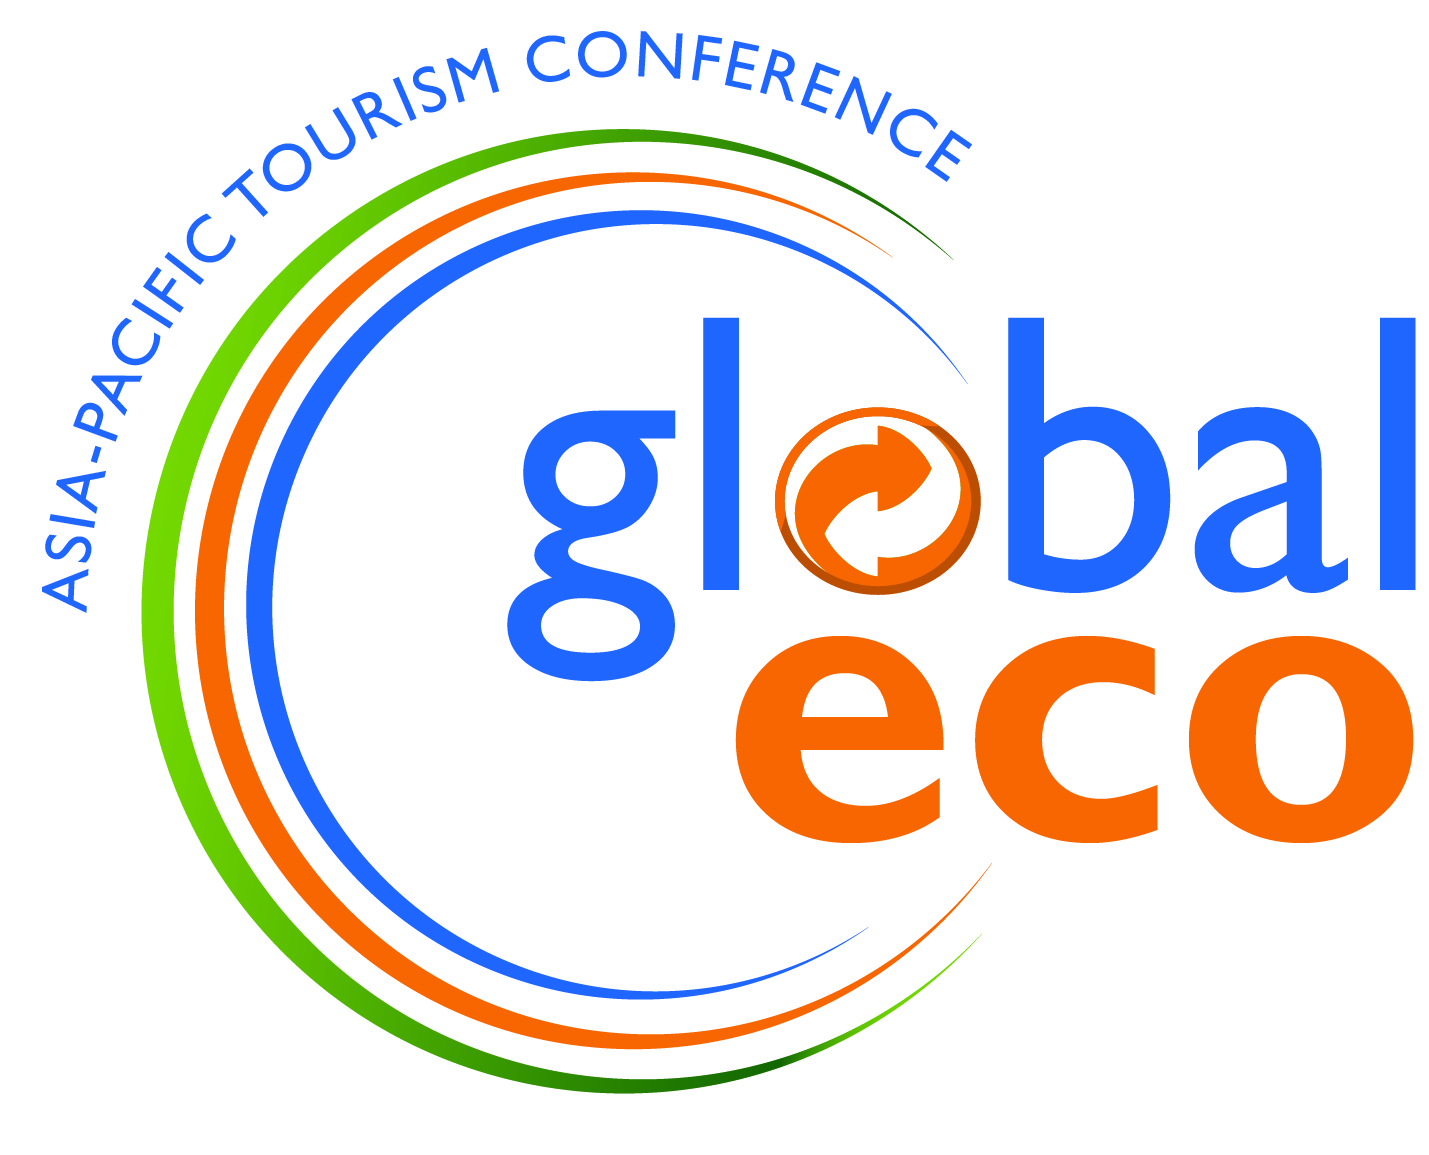 Global Eco Asia-Pacific Tourism Conference